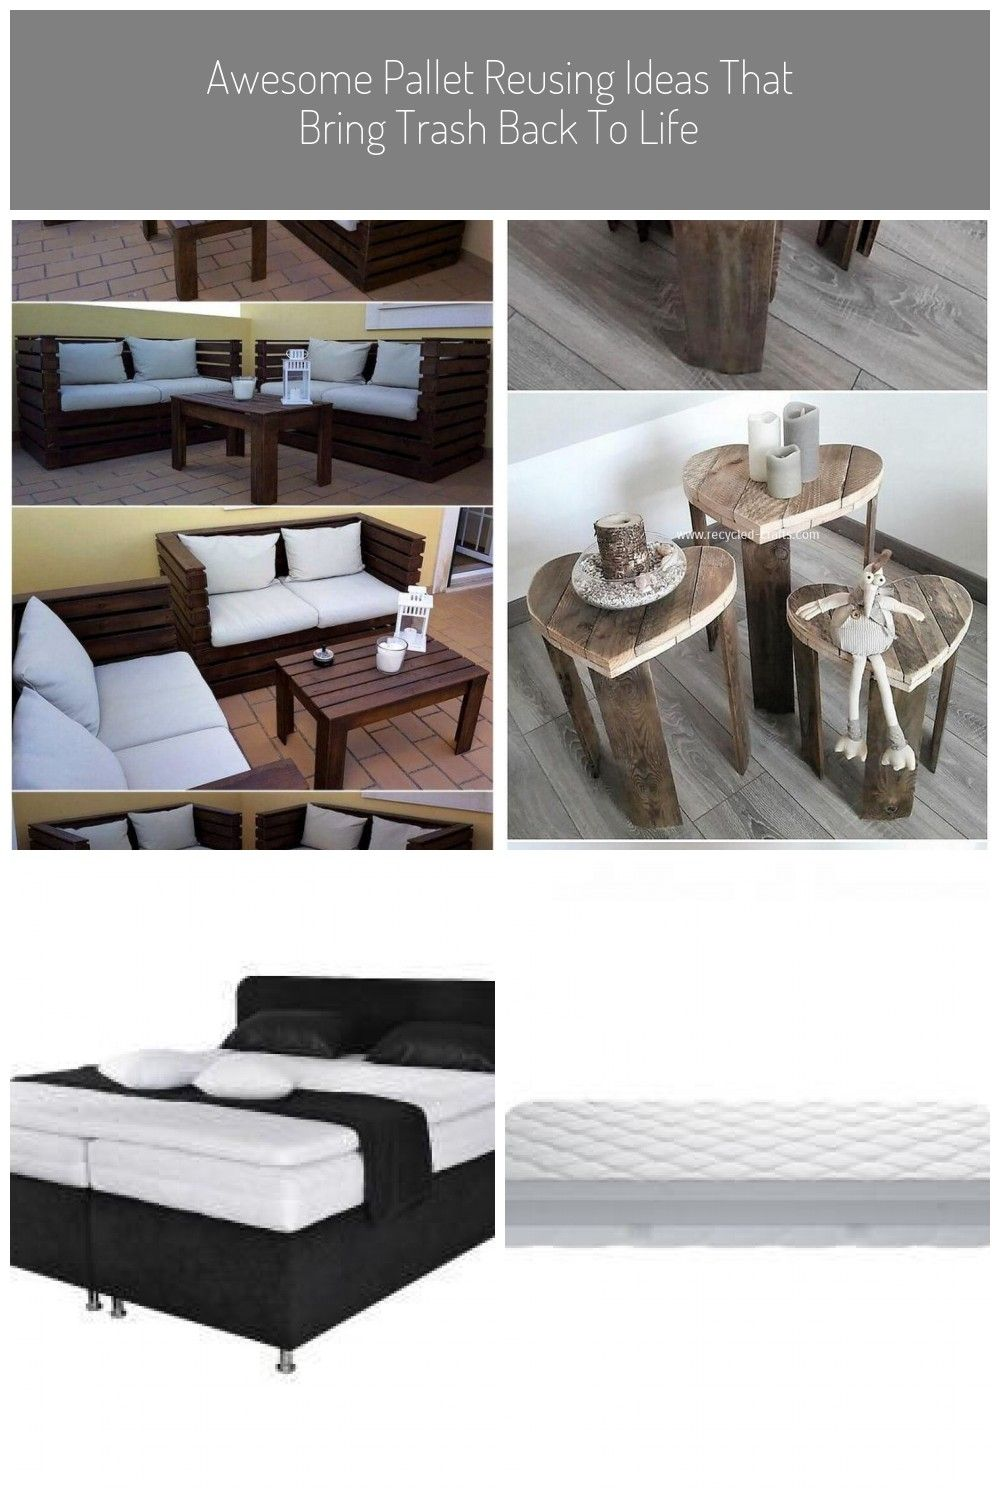 Pallet Outdoor Couch Set Pallet Furniture Awesome Pallet Reusing